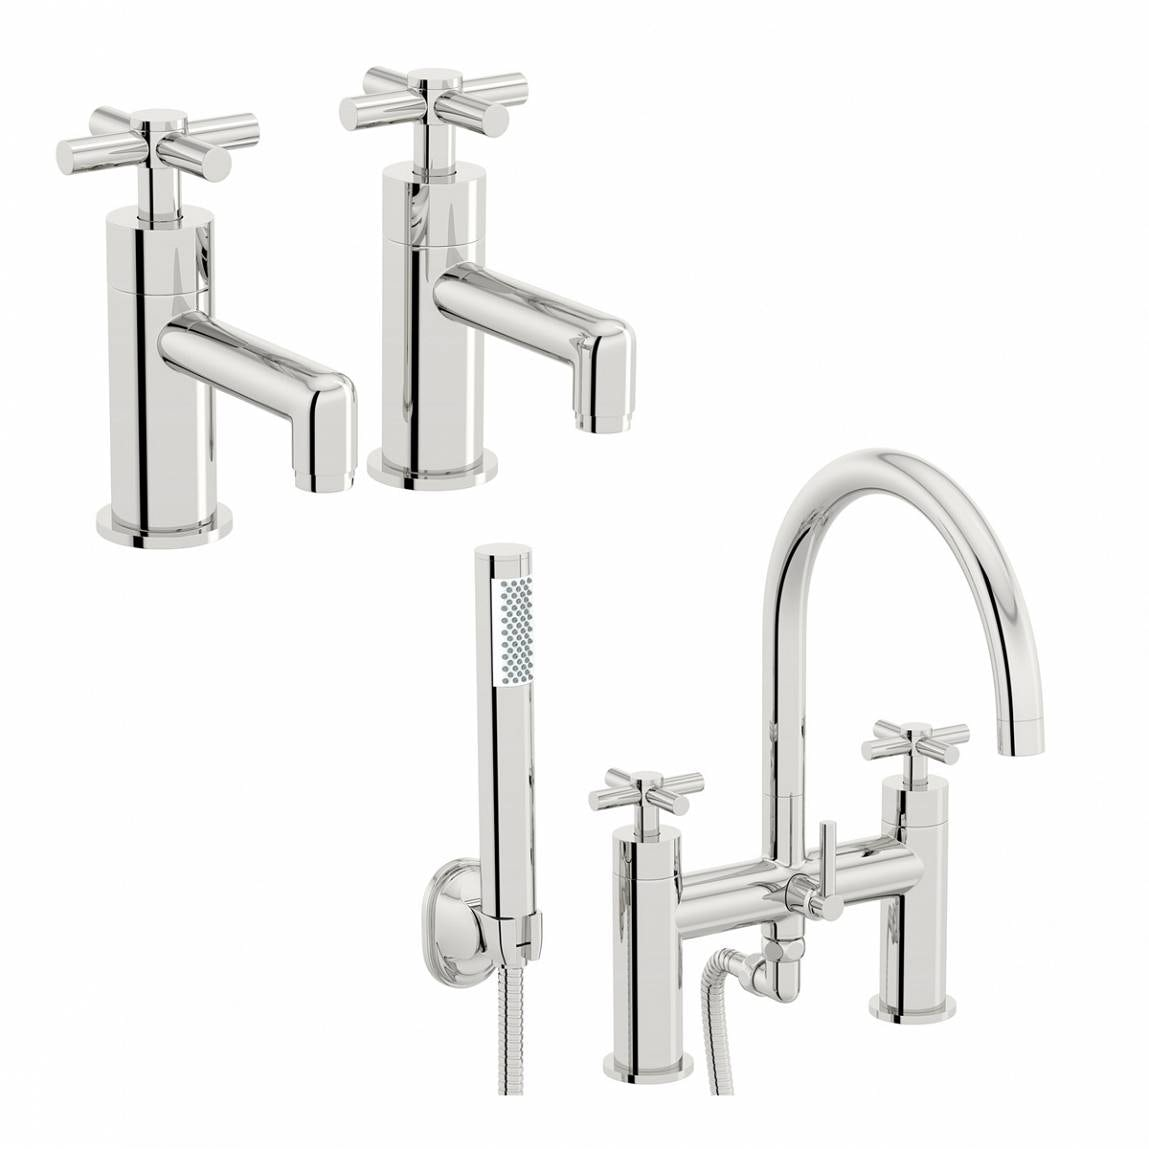 Mode Tate basin tap and bath shower mixer tap pack